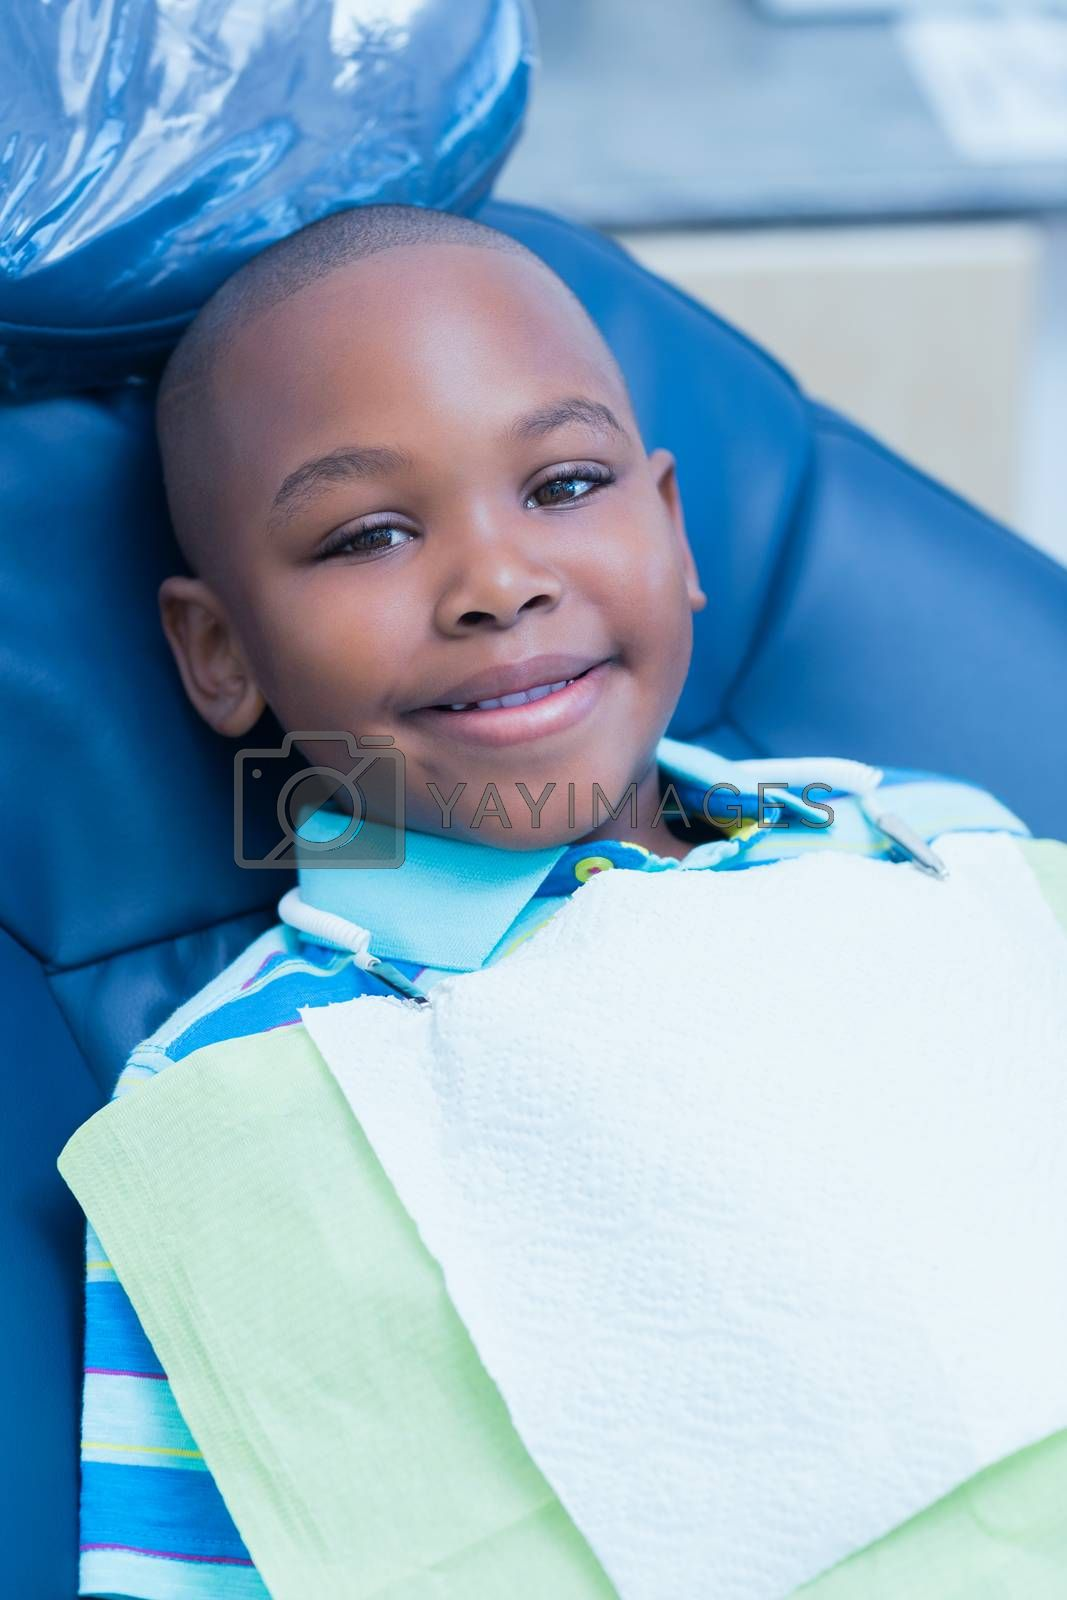 Portrait of smiling boy waiting for a dental exam